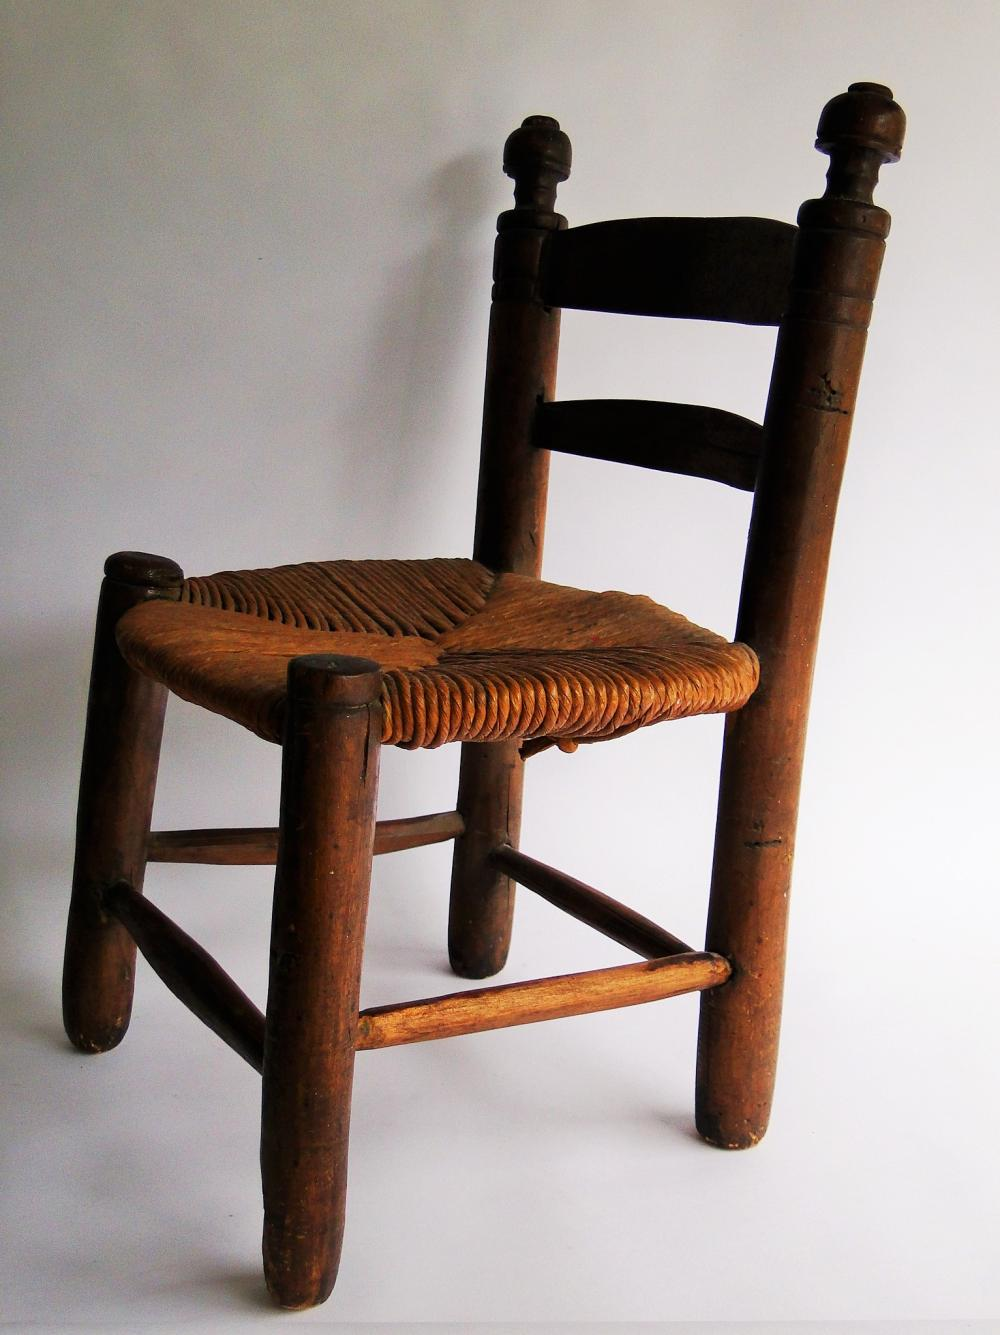 Lot 106: RARE PILGRIM CENTURY DIMINUTIVE CHILD'S CHAIR